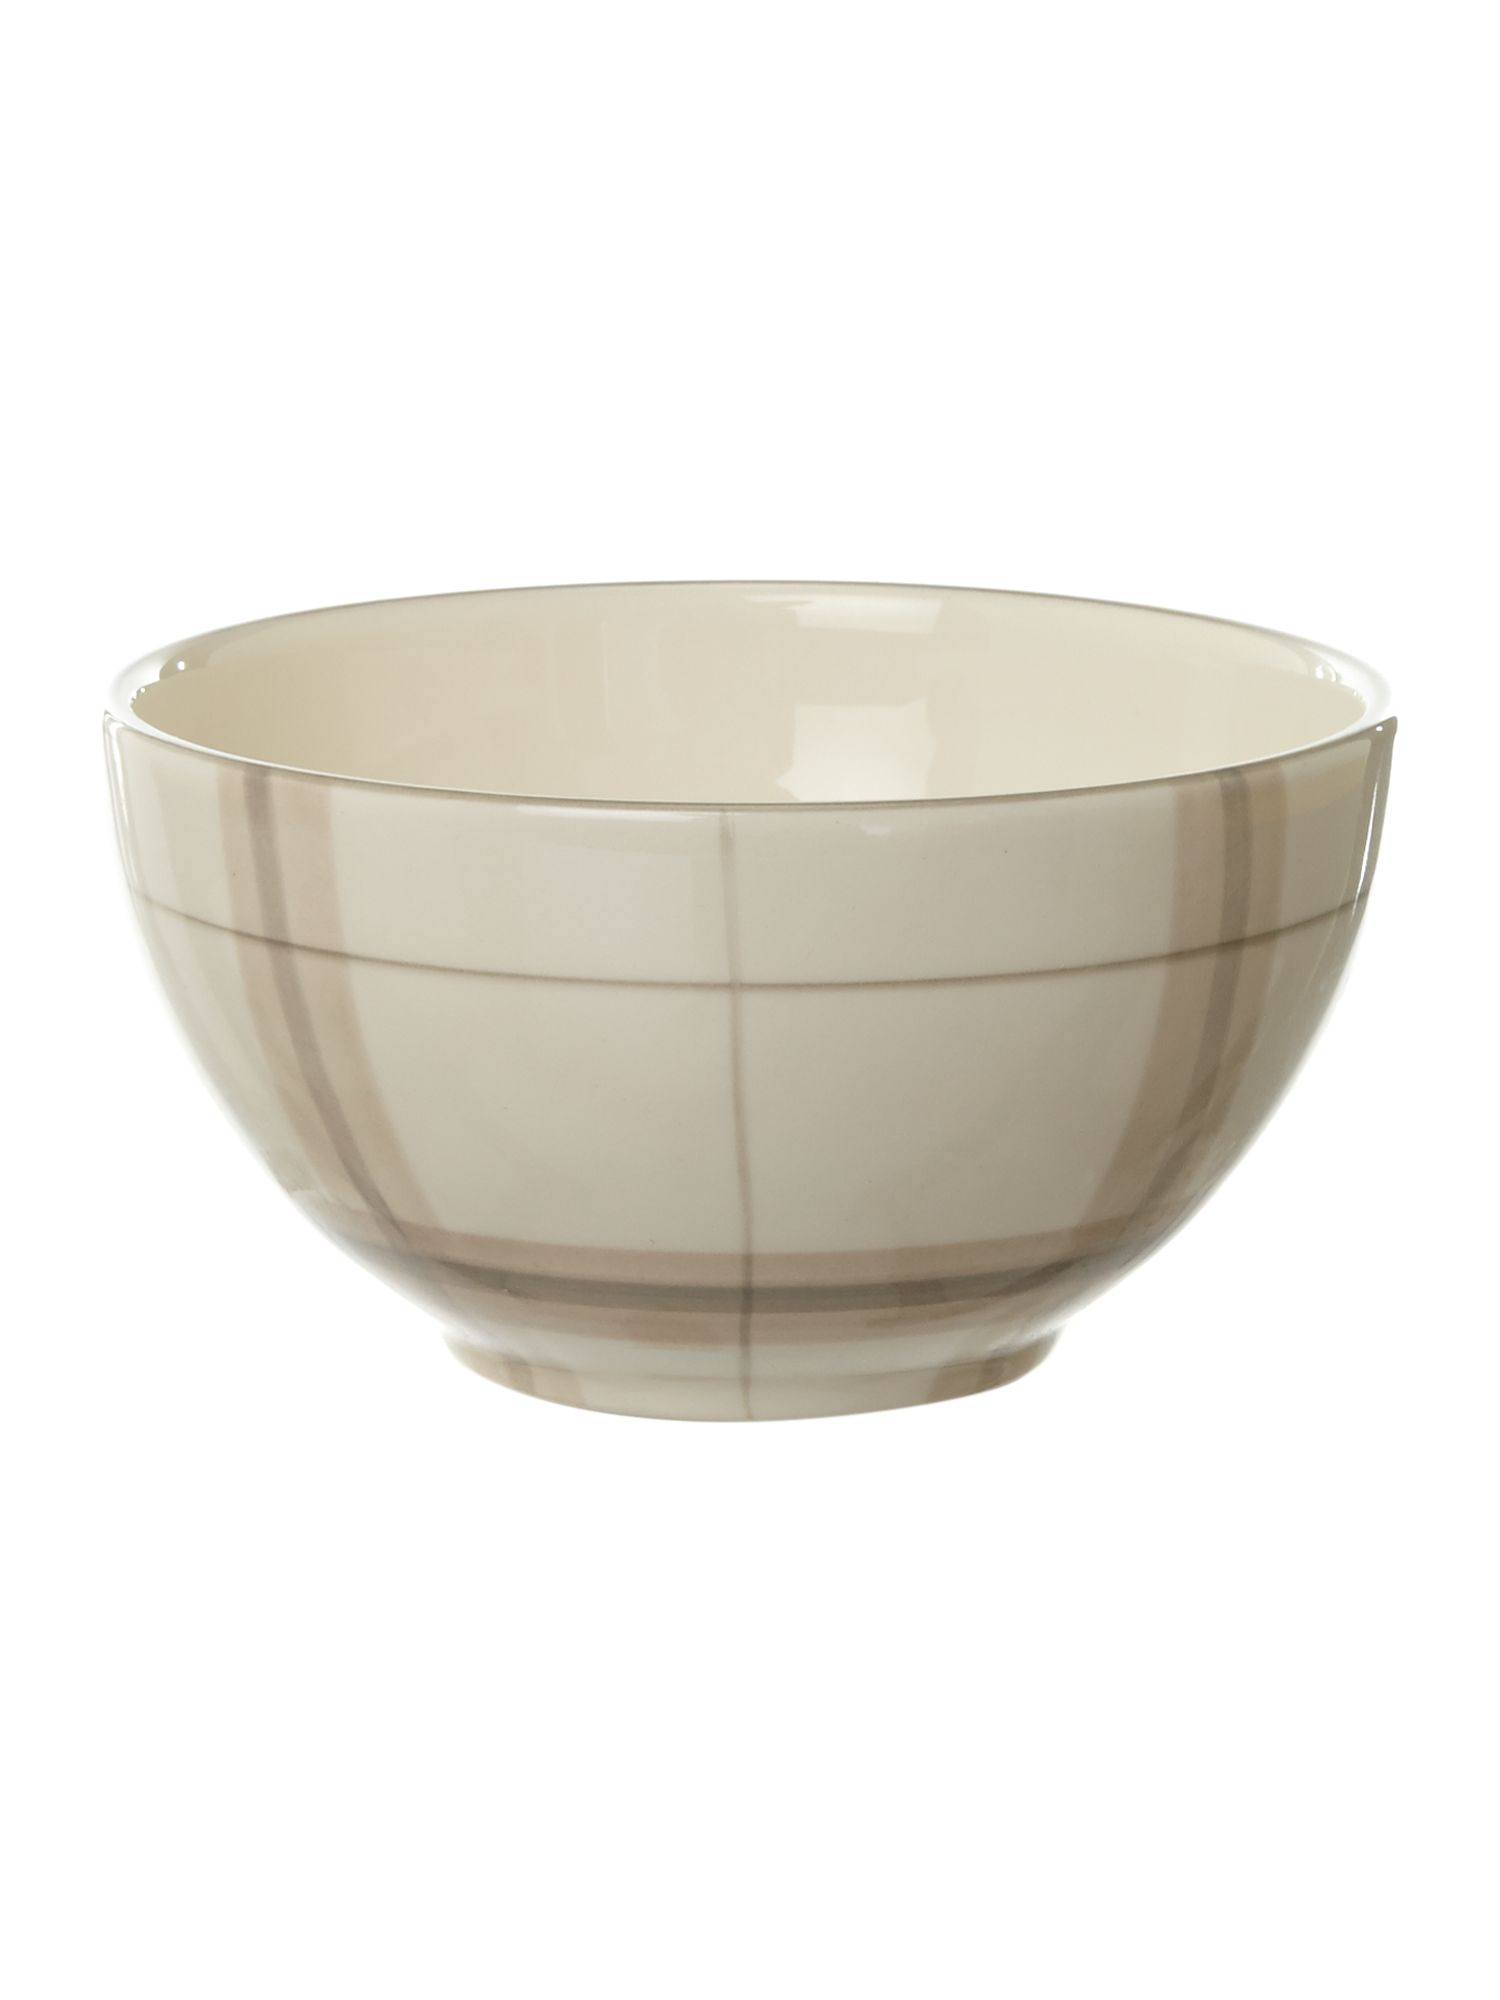 Forest check cereal bowl